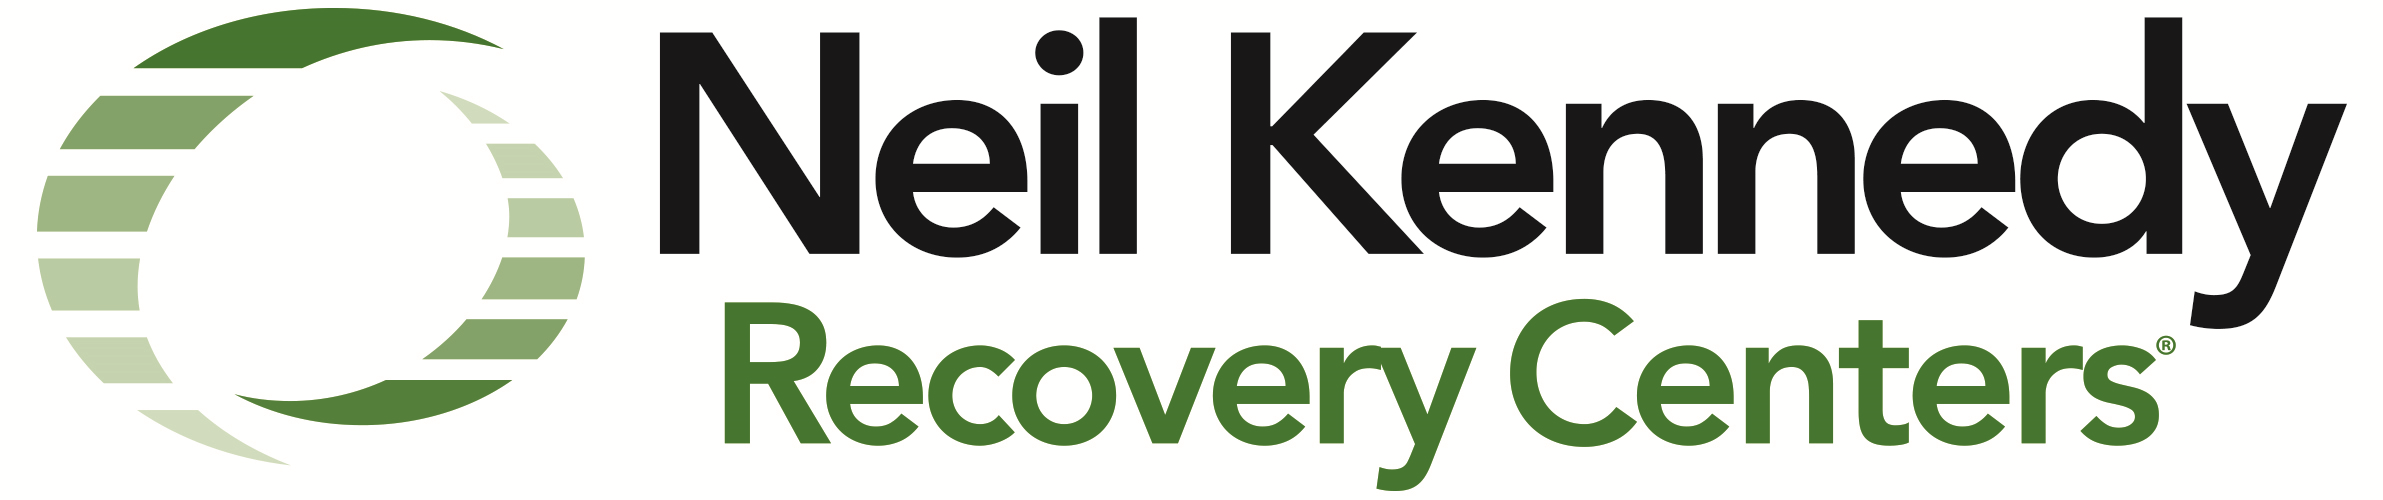 Neil Kennedy Recovery Centers